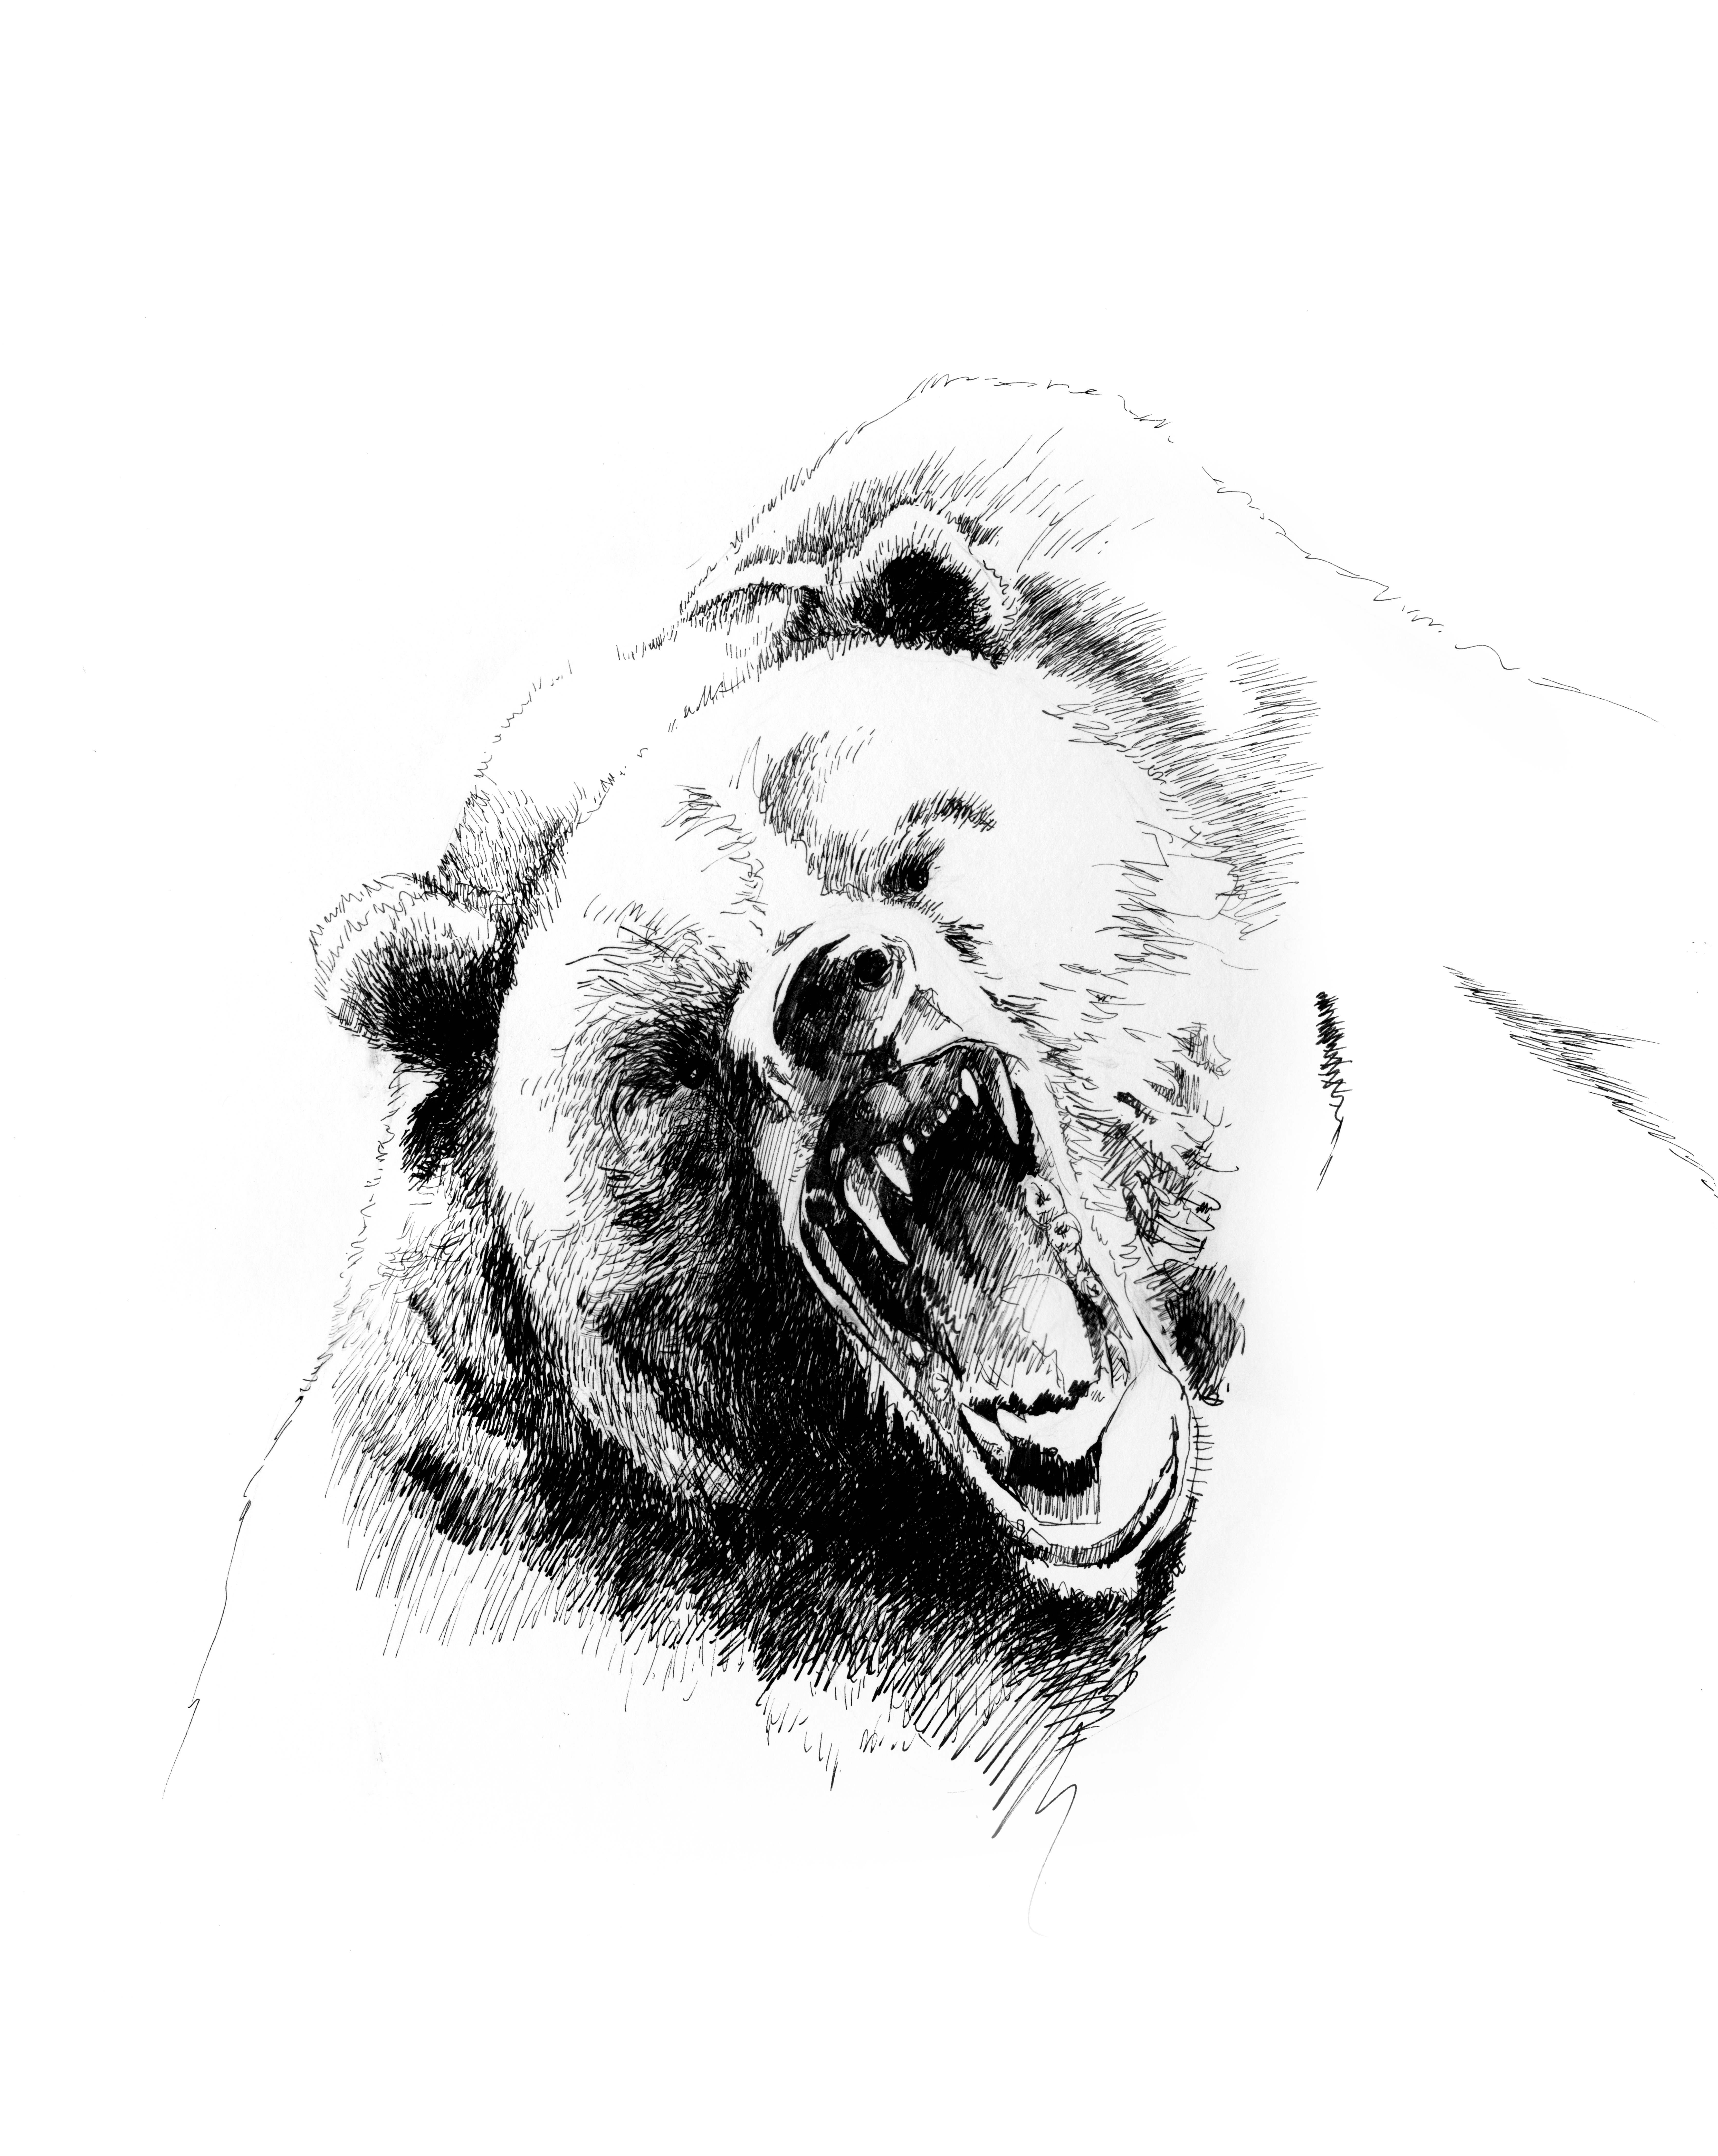 grizzly bear drawings grizzly old bear drawing by paul kmiotek bear grizzly drawings